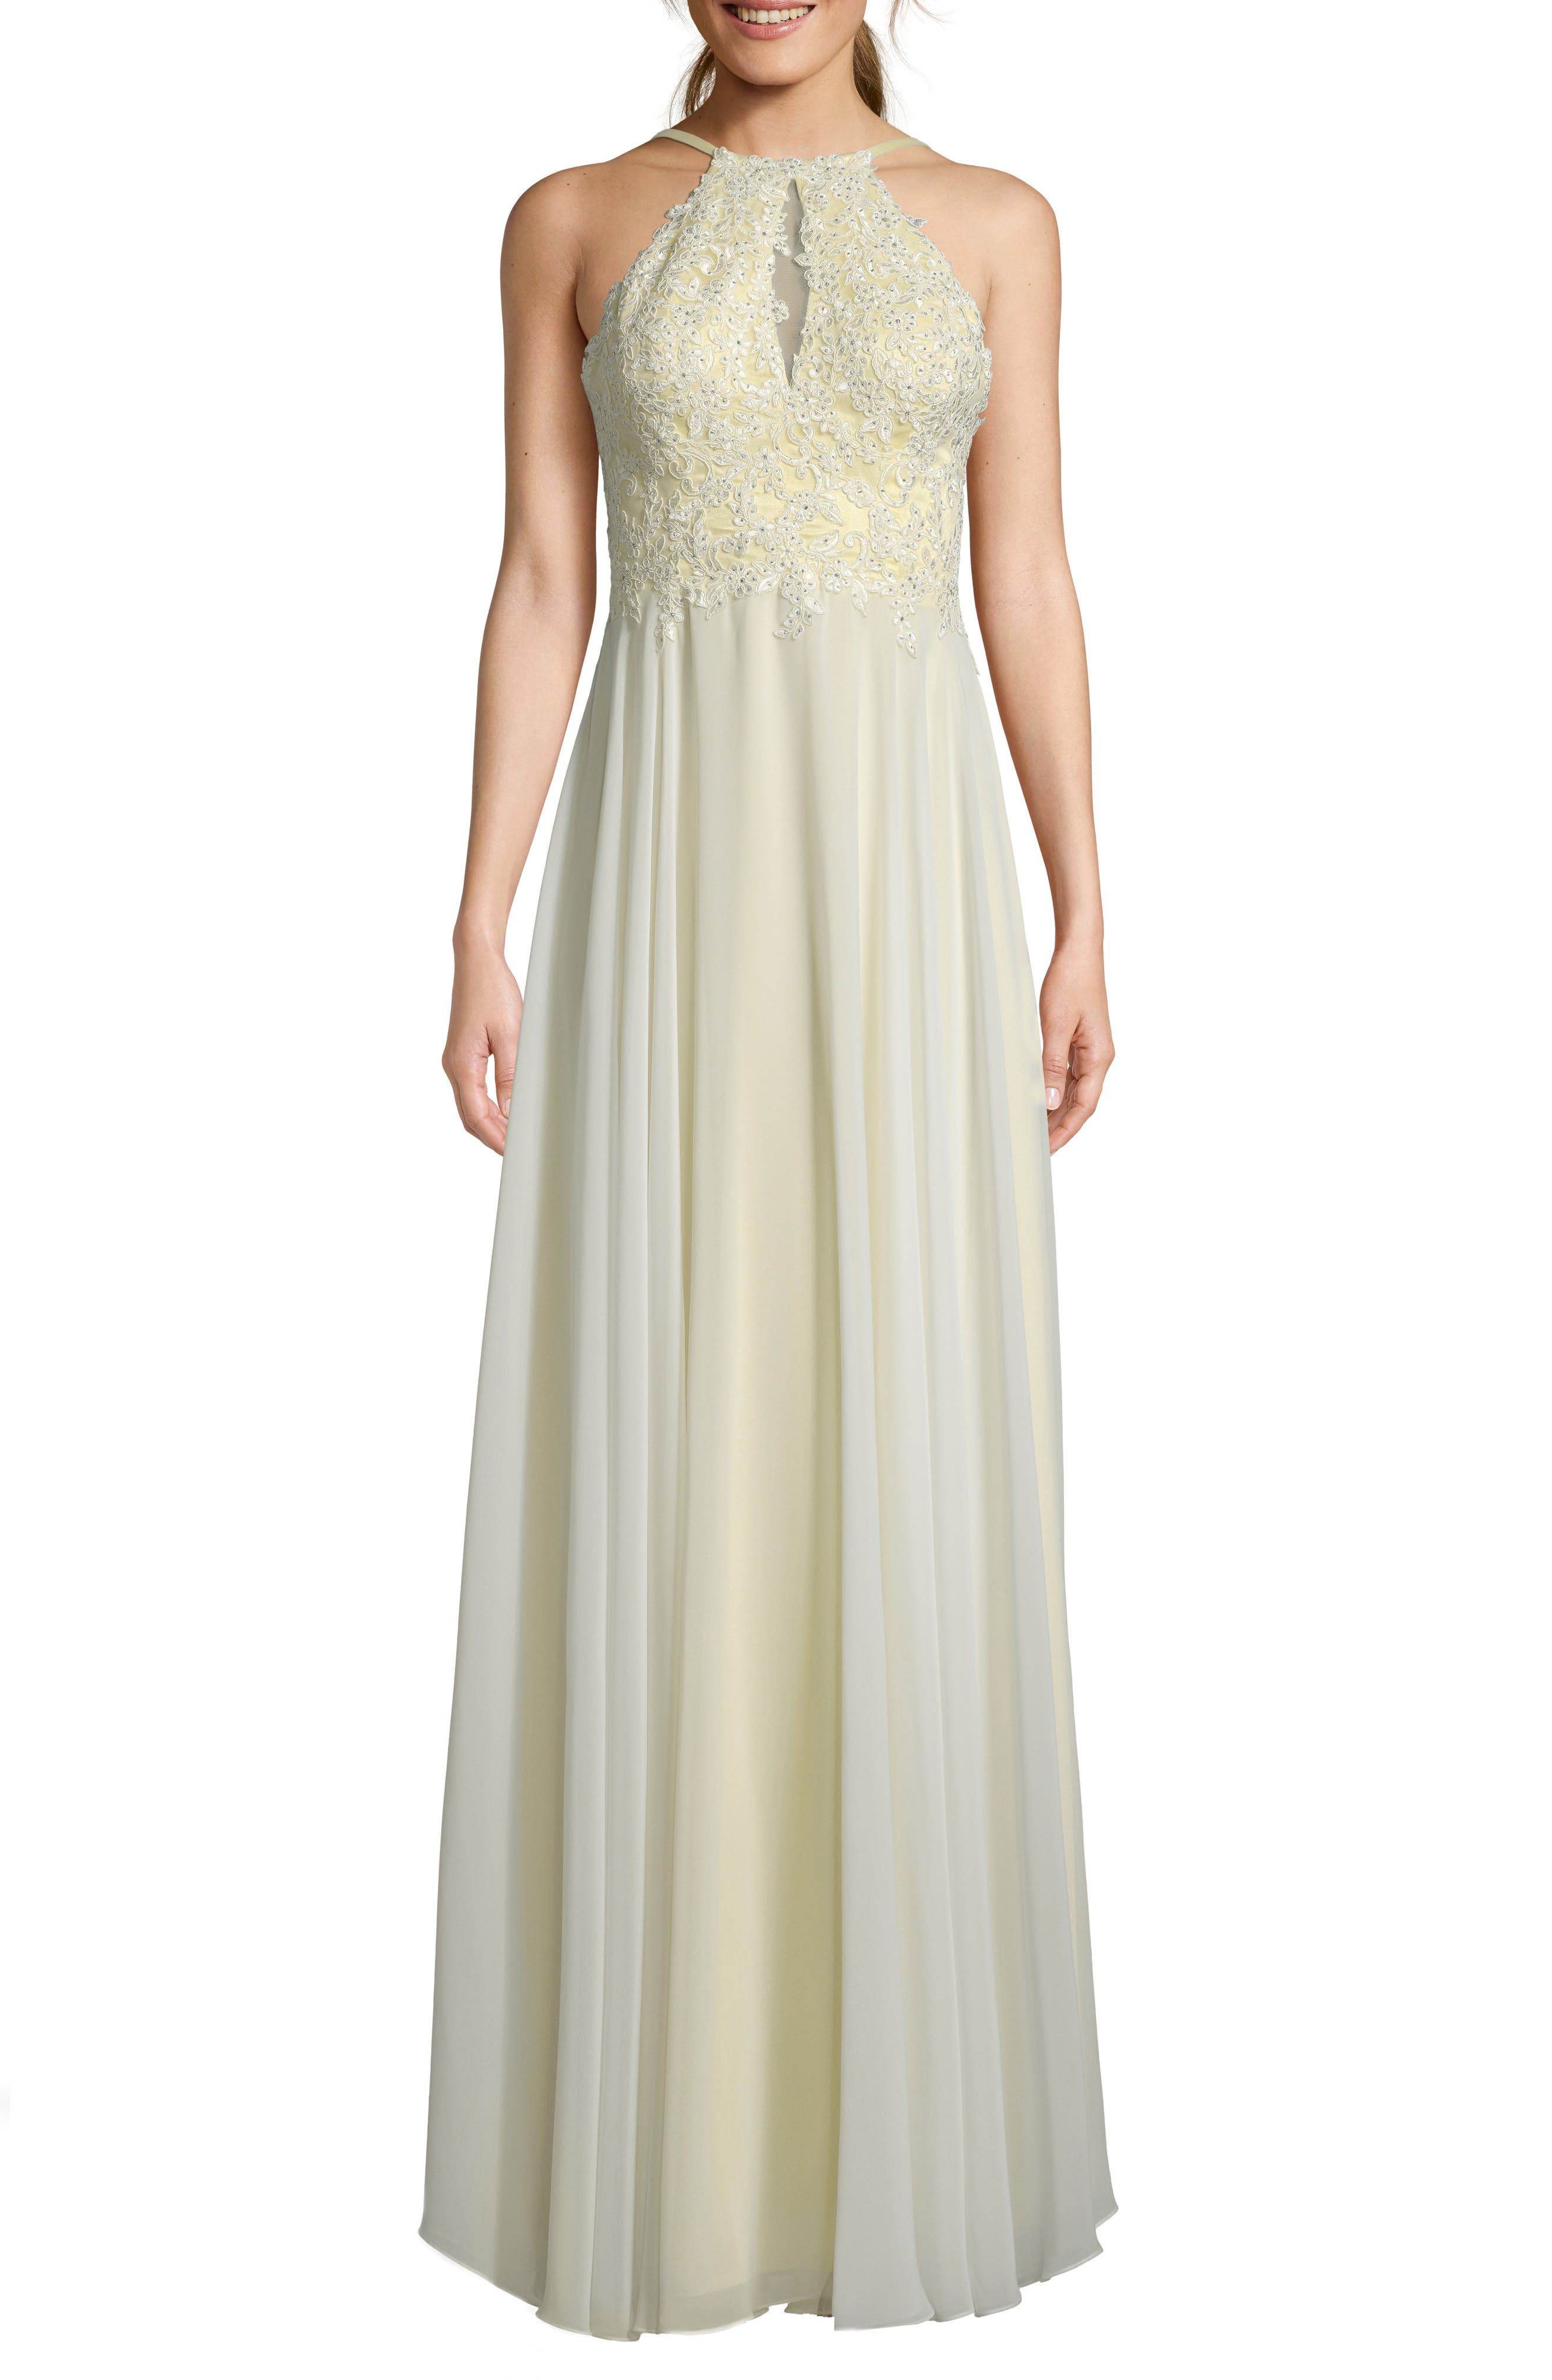 Xscape Beaded 3D Floral Lace Chiffon Evening Dress, Yellow